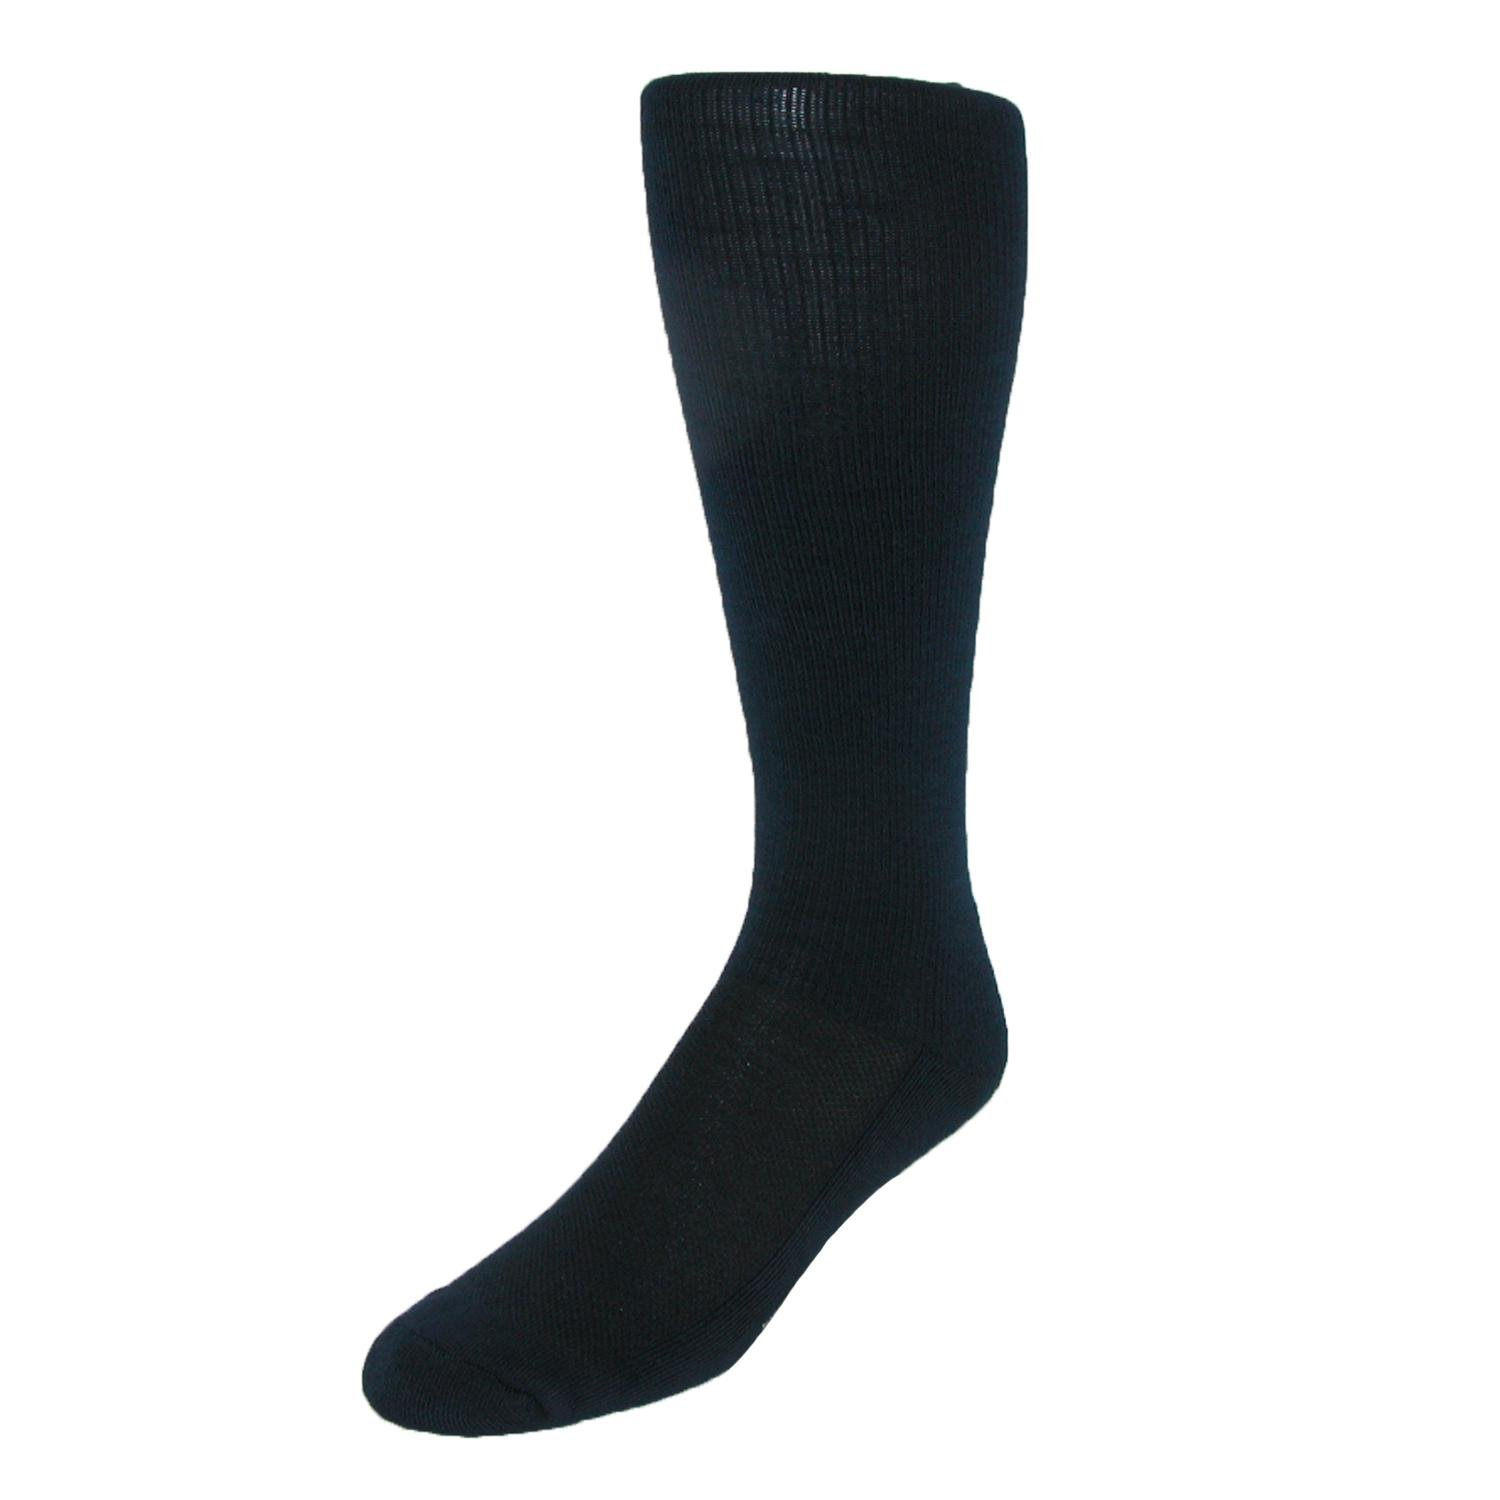 Windsor Collection Men's Gradual Compression Travel Support Socks, Navy